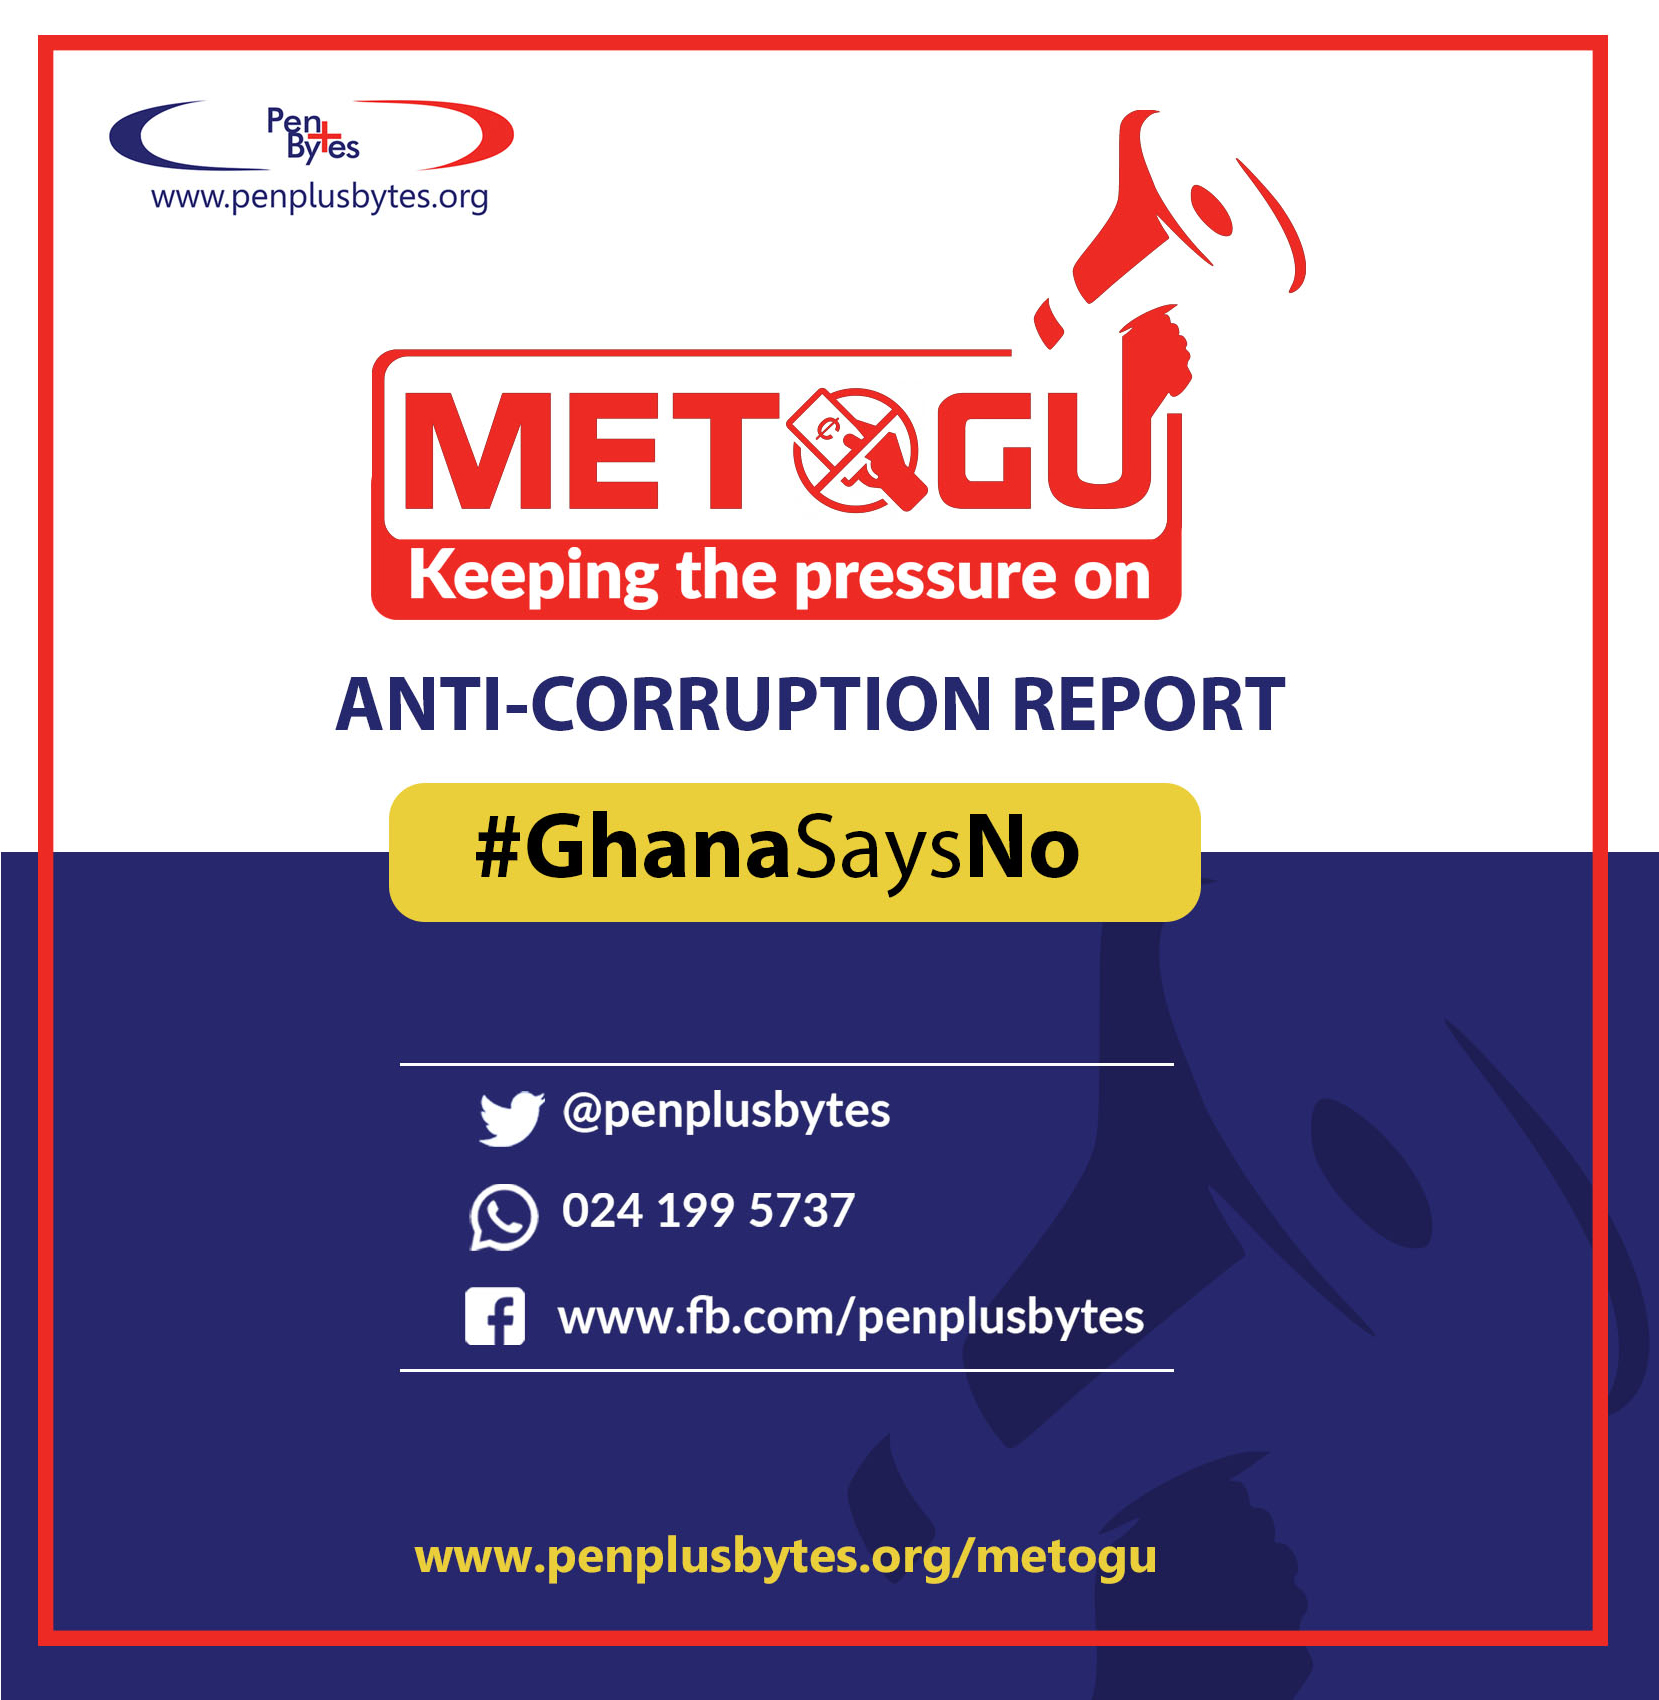 NPP Government to Engage Penplusbytes on METOGU Anti-corruption Report